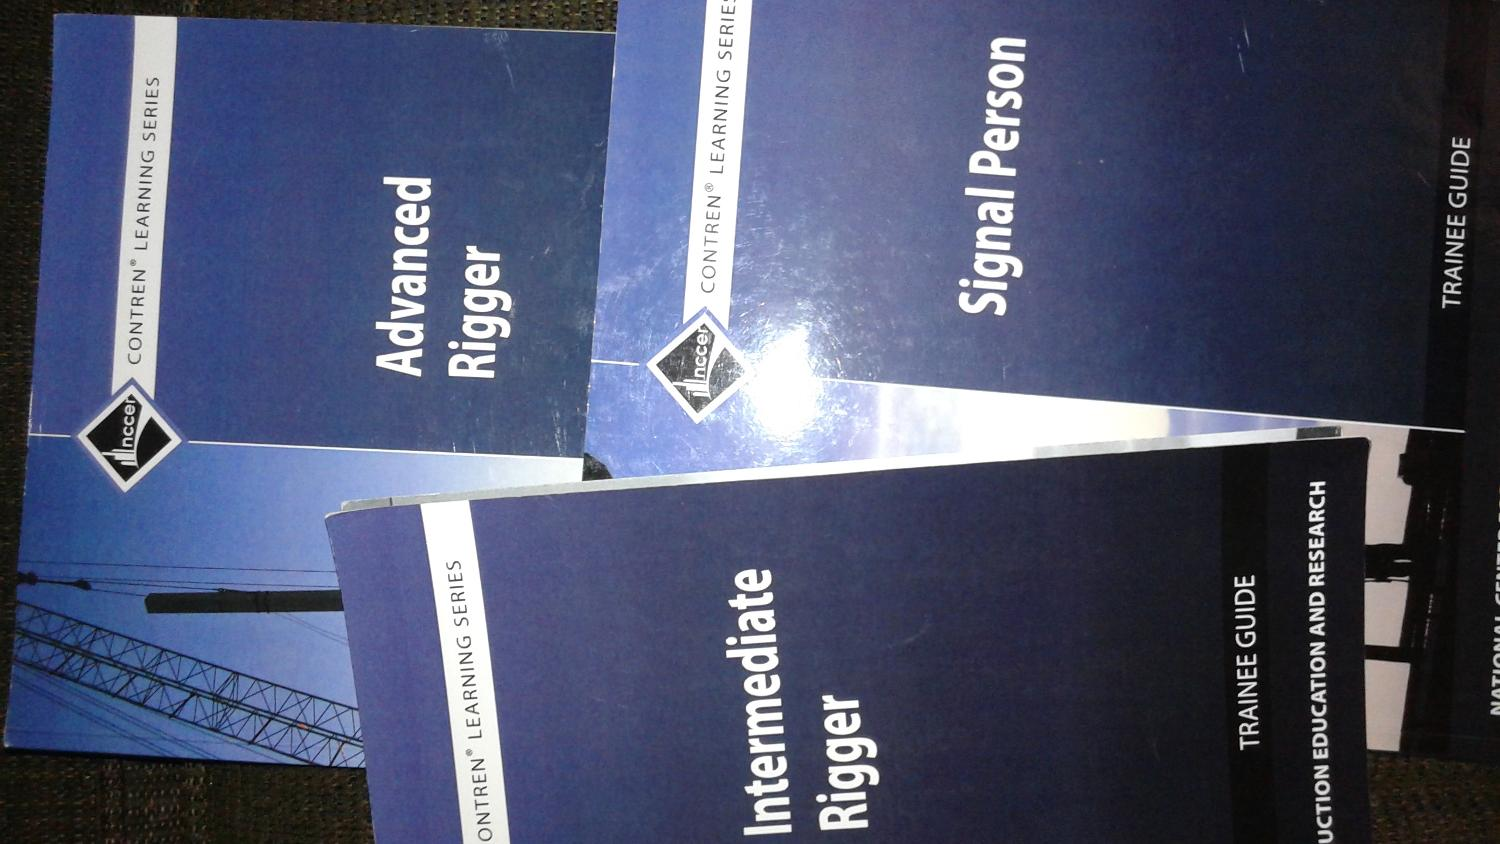 Find more Rigger Books Contren Learning Series Nccer Rigger Books for sale  at up to 90% off